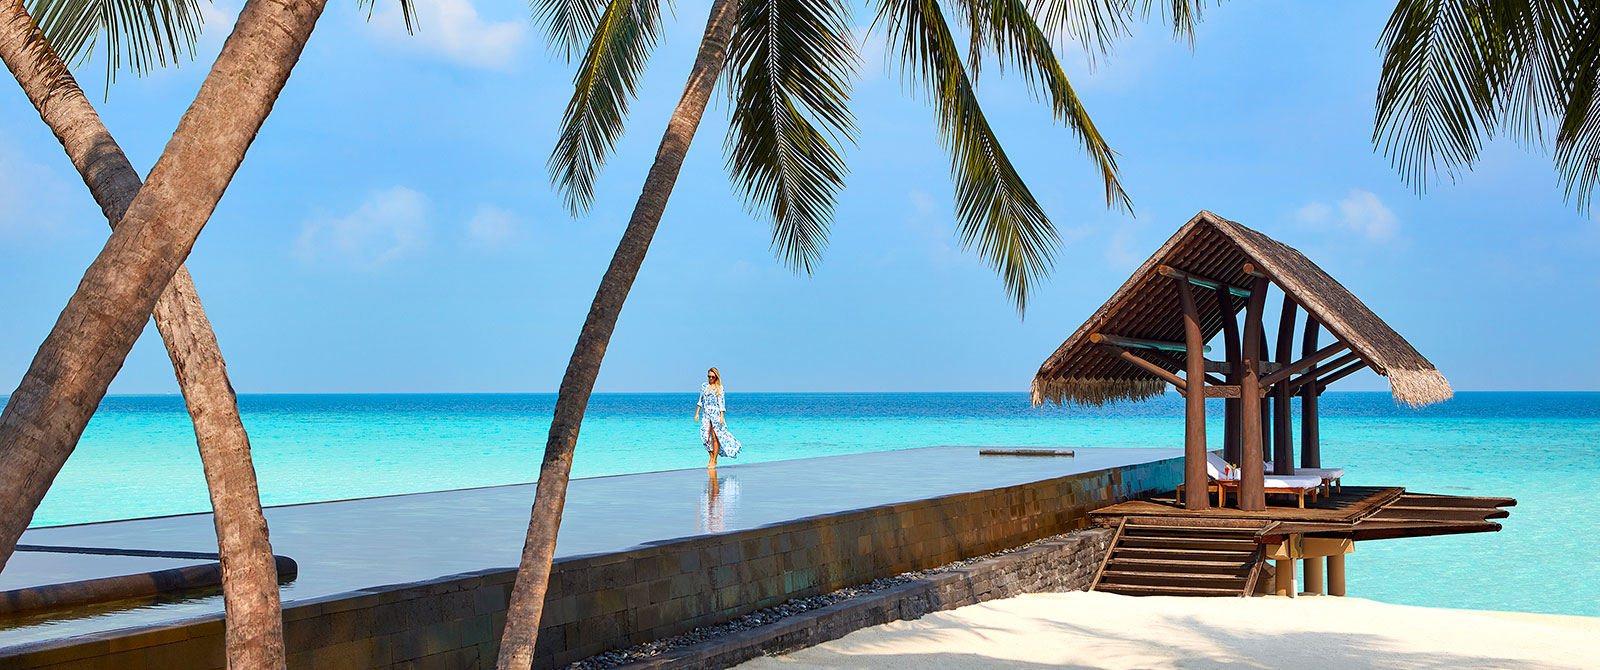 Luxury Lap Pool at One&Only Reethi Rah Maldives